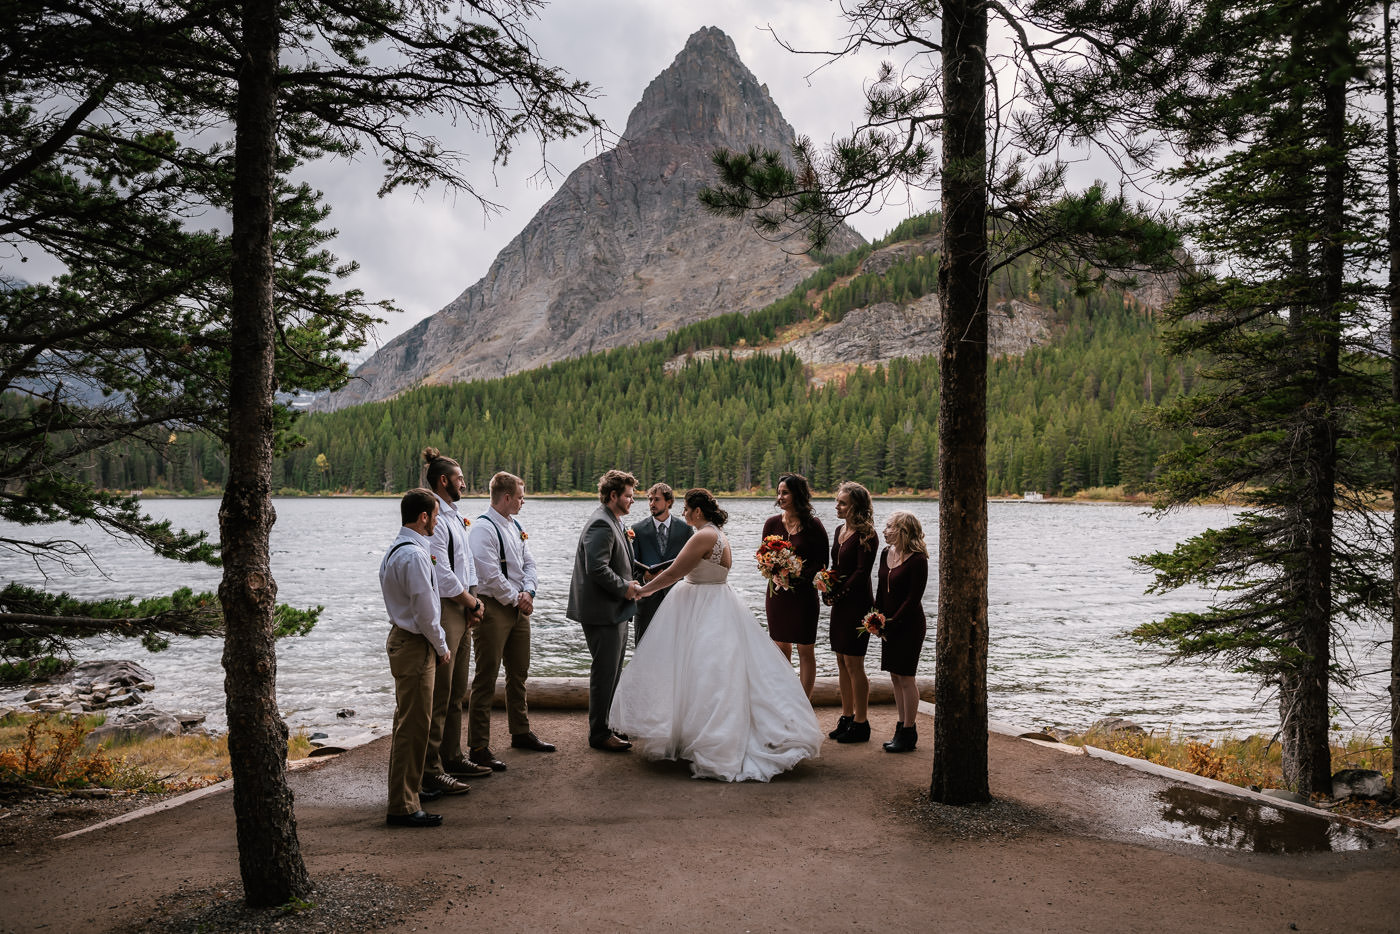 Intimate wedding ceremony in Many Glacier.